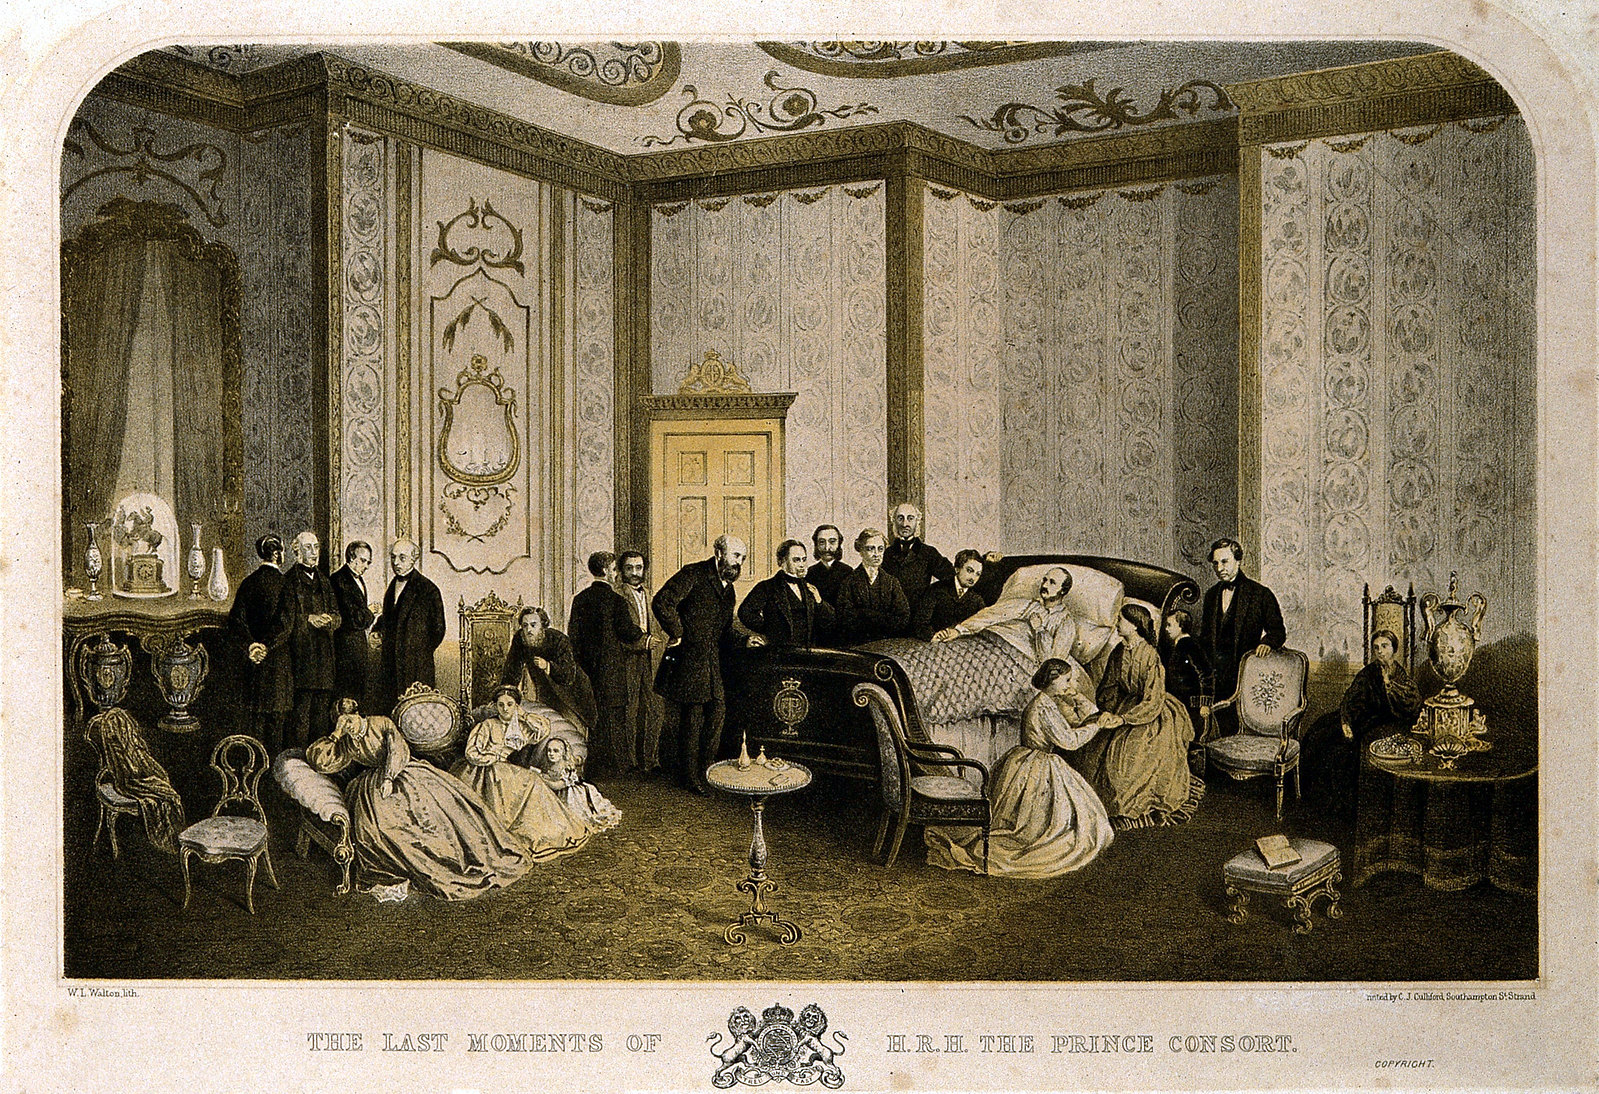 Albert, Prince Consort, on his deathbed at Windsor Castle, with members of the royal family and the royal household in attendance, 14 December 1861. Credit Wellcome Images